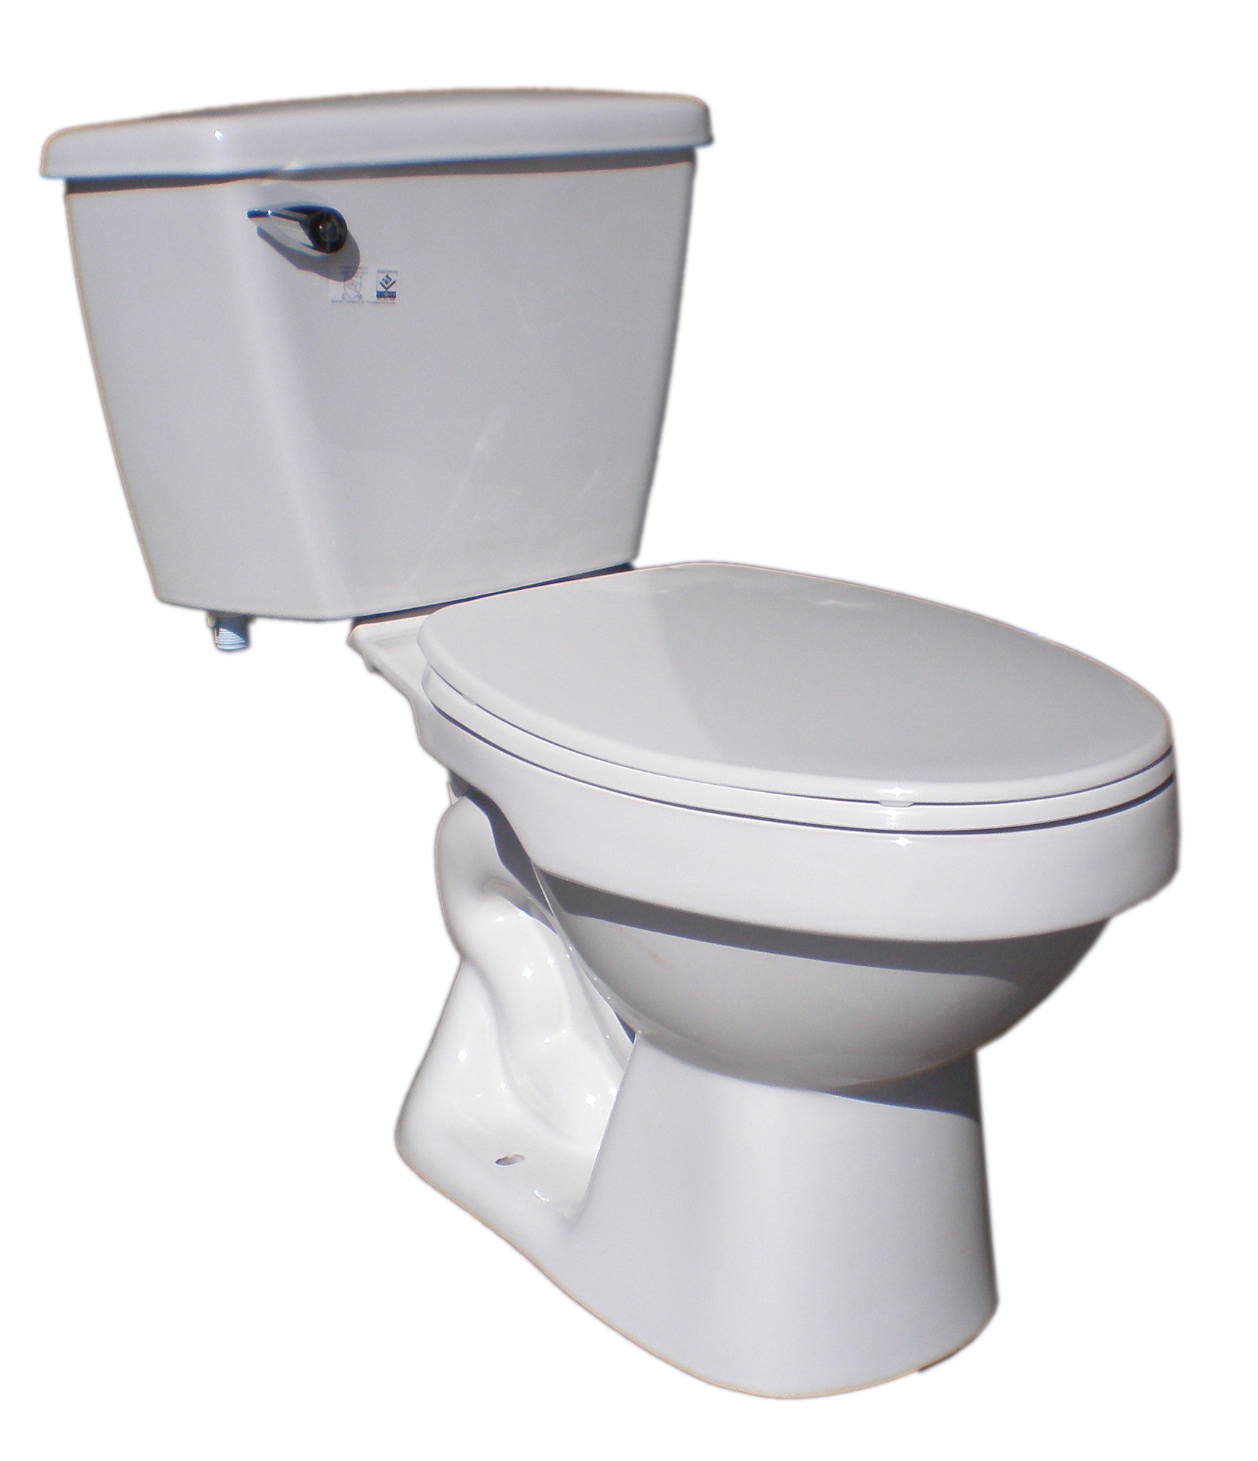 Complete Toilet In Box Tank Elongated Bowl Seat Closet